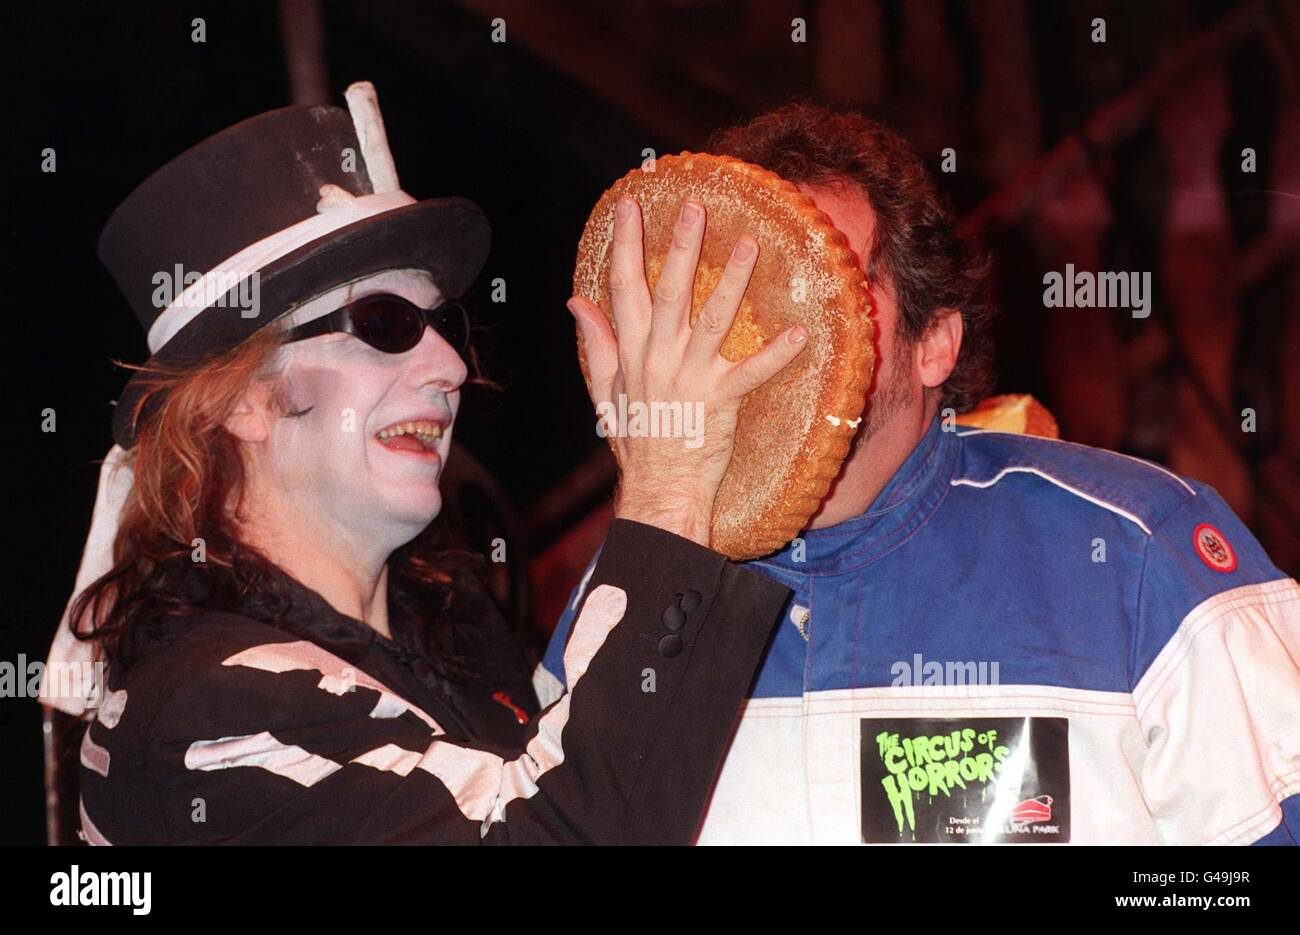 BEADLE/Pie in face 2 - Stock Image